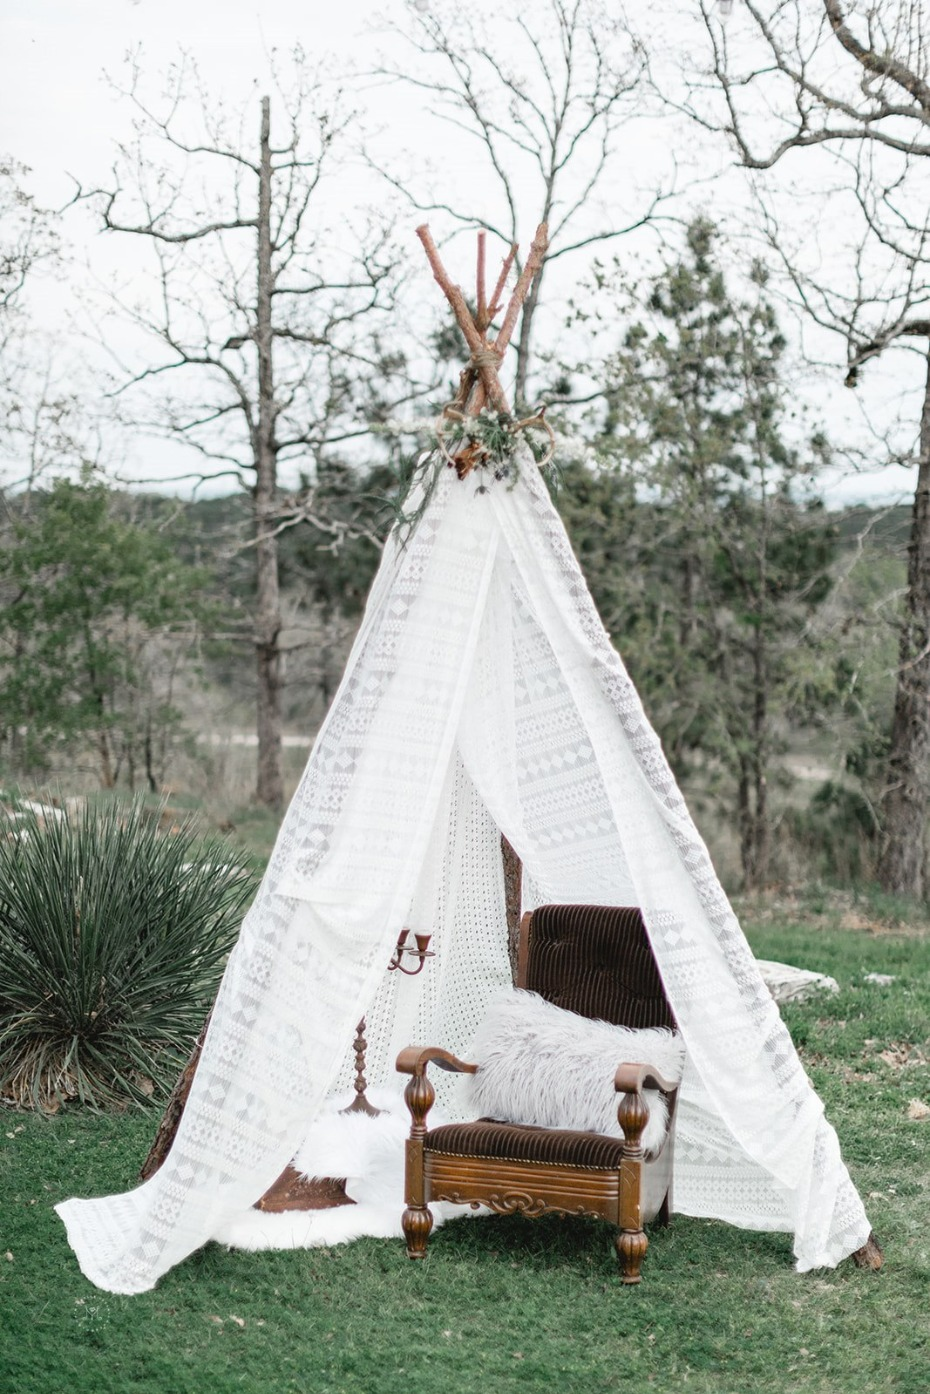 Lace wedding teepee lounge area